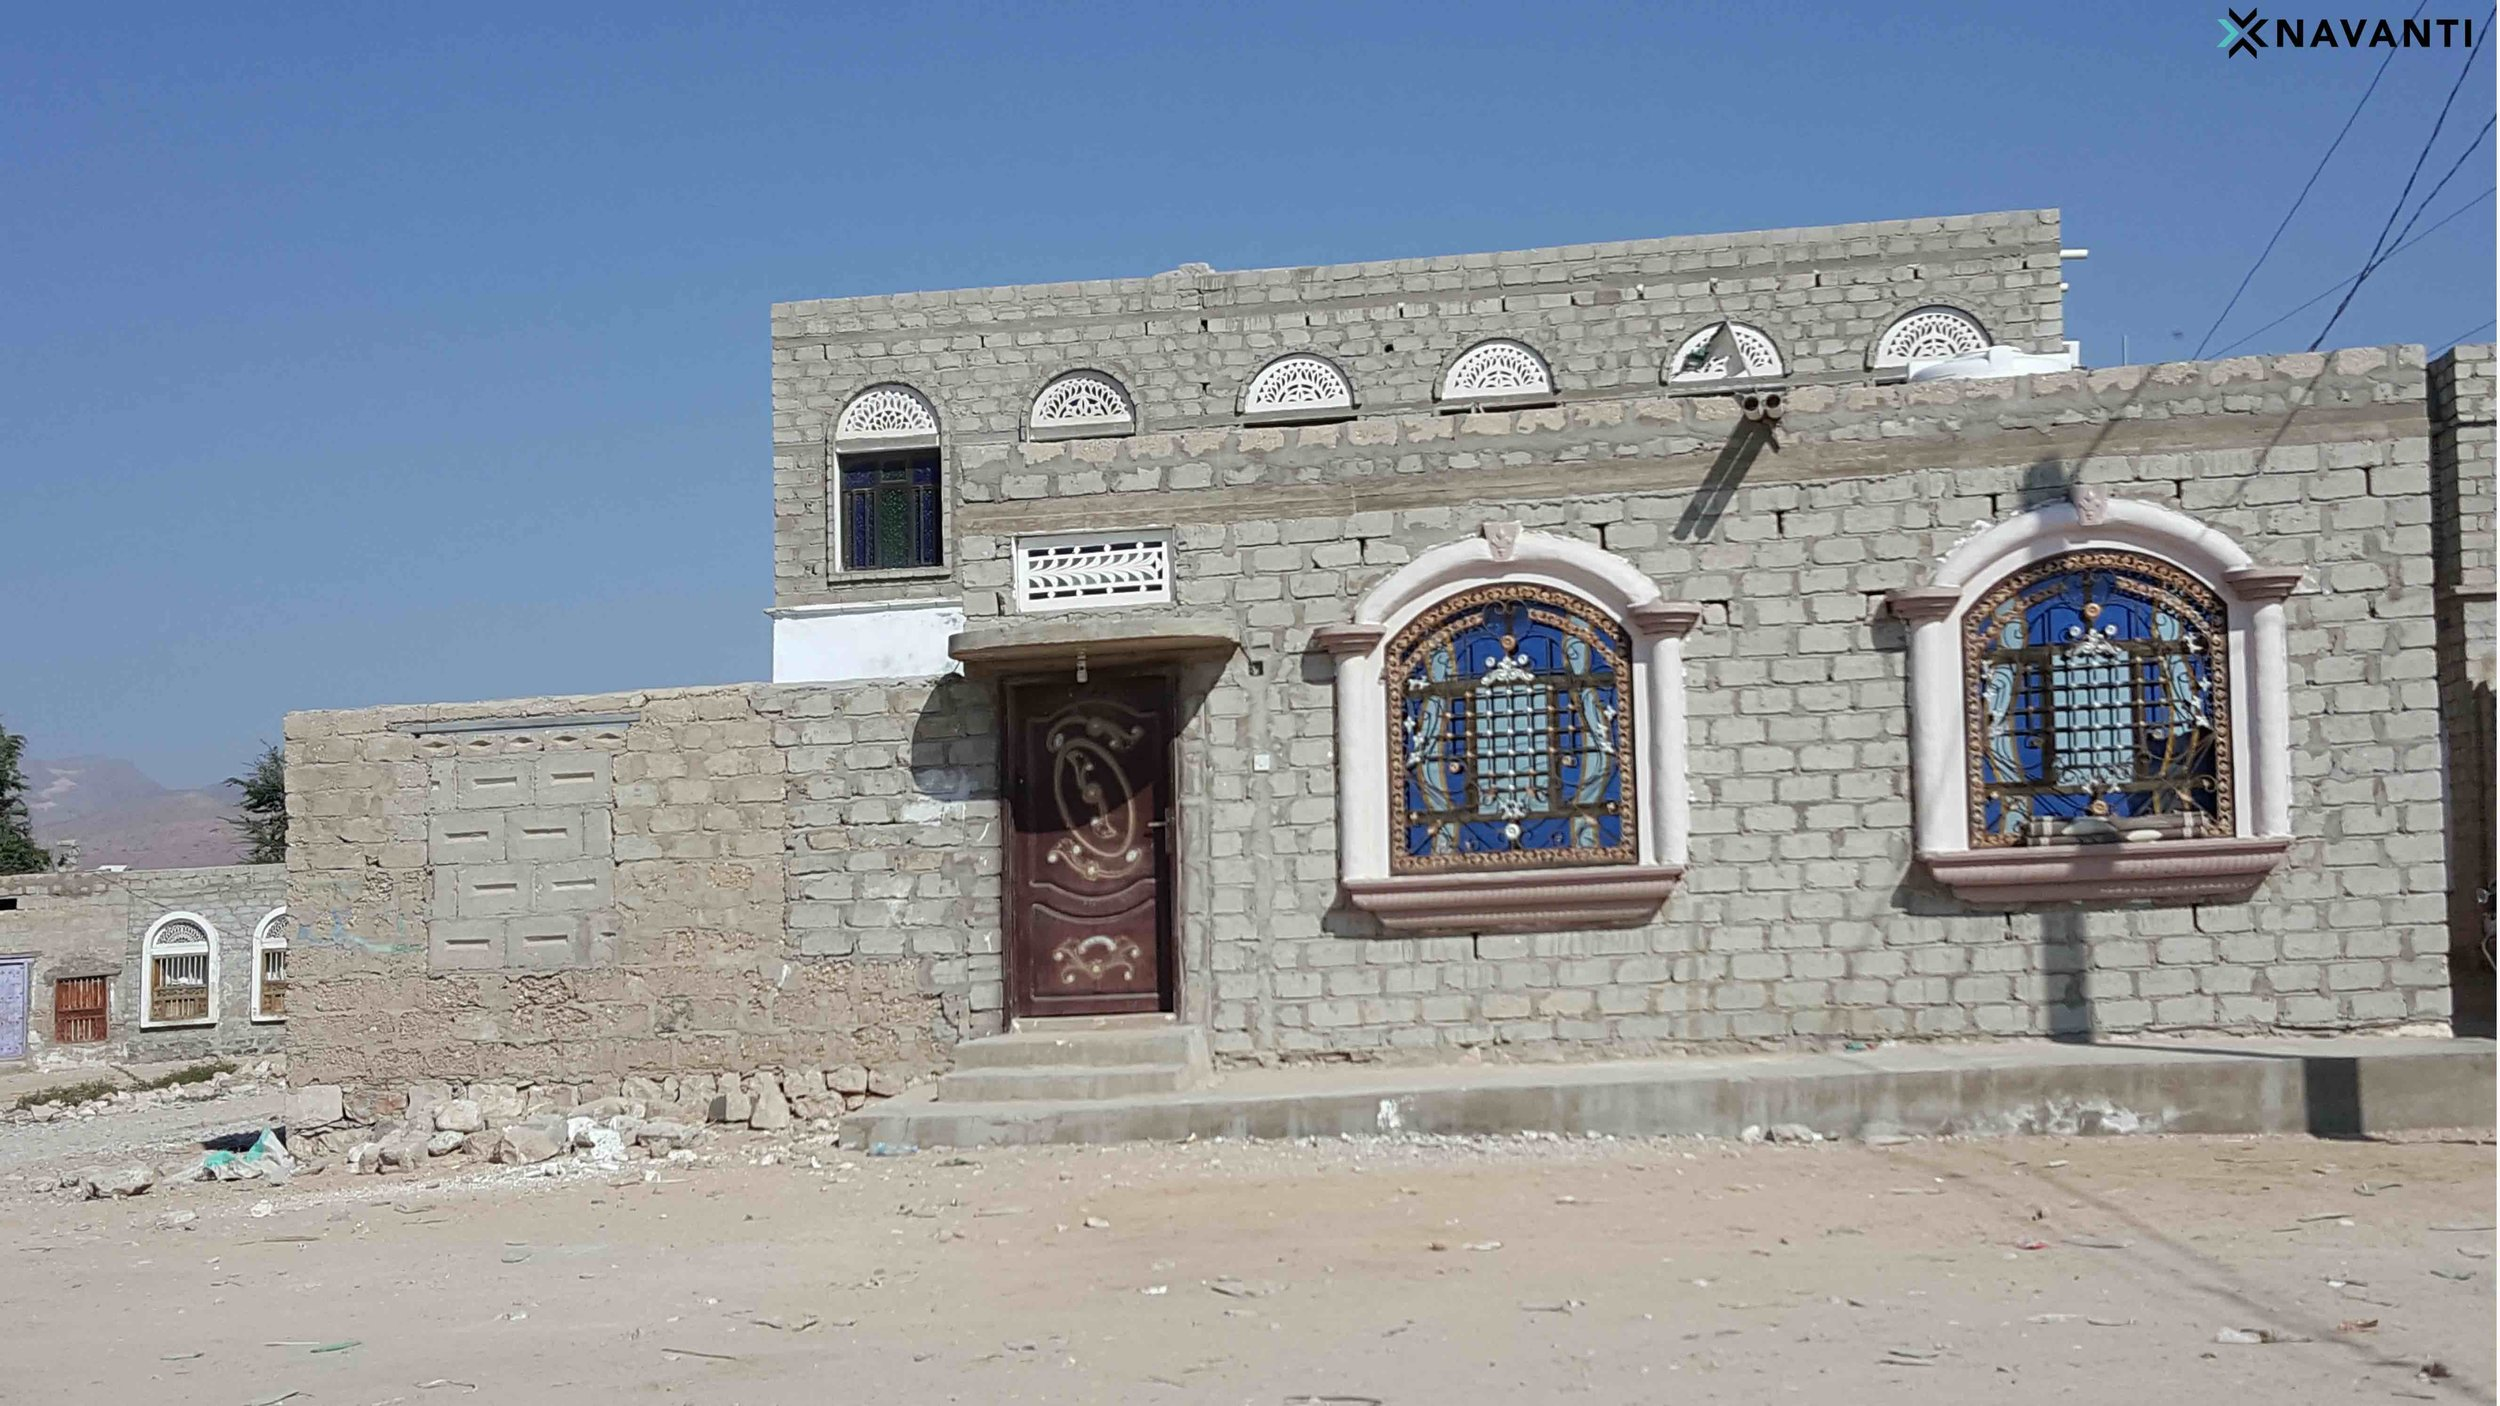 House in Sayhut, al-Mahra. Source: Navanti